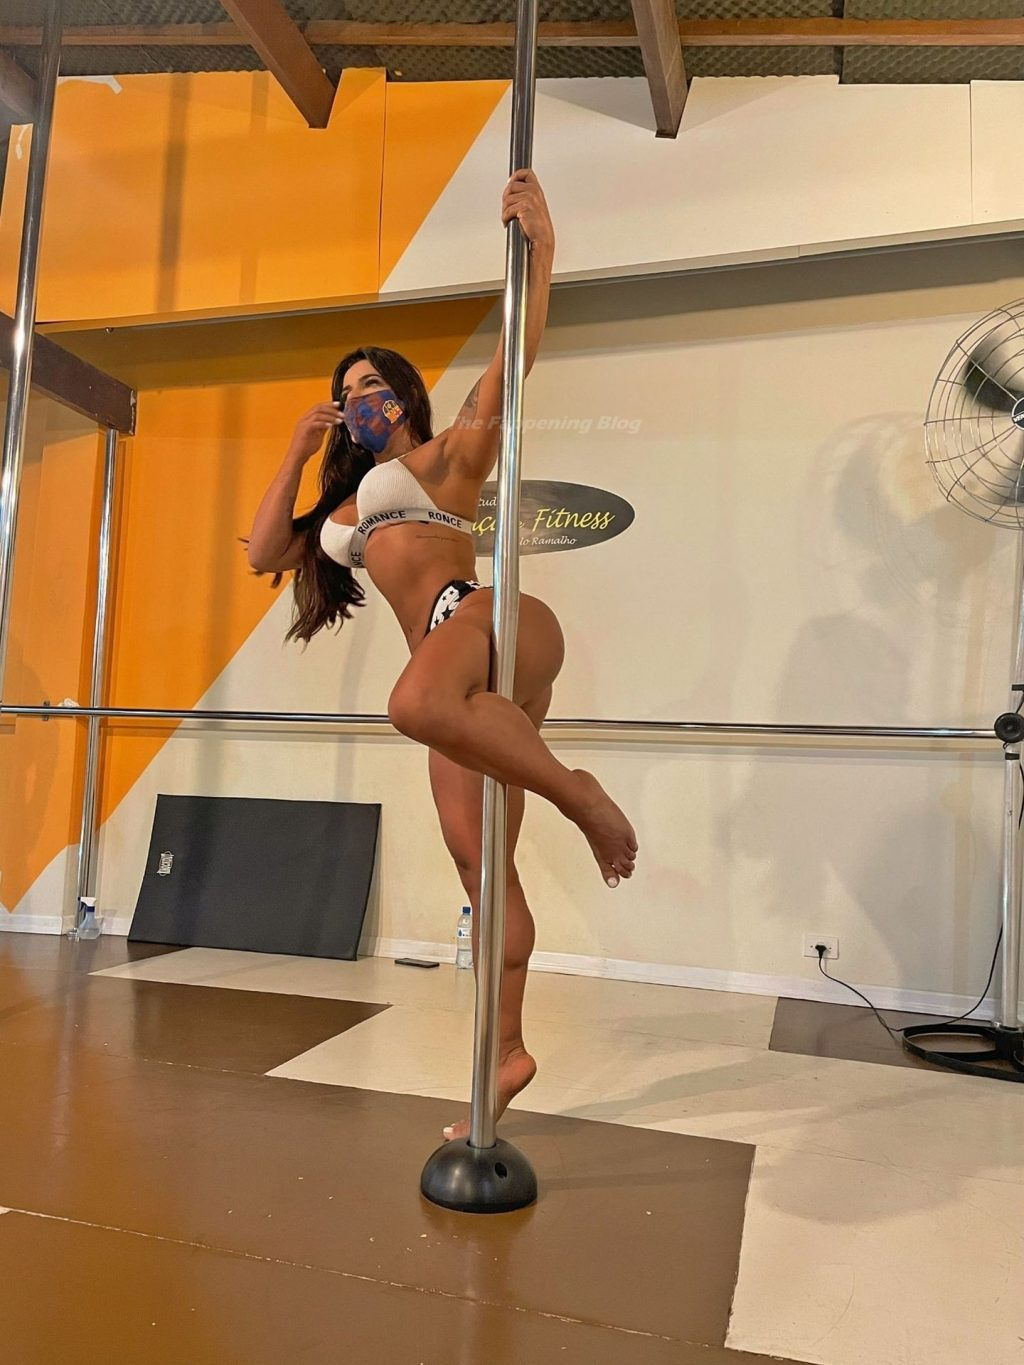 Suzy Cortez Gets the Pulses Racing with a Sexy Display on a Pole (11 Pics + Video)